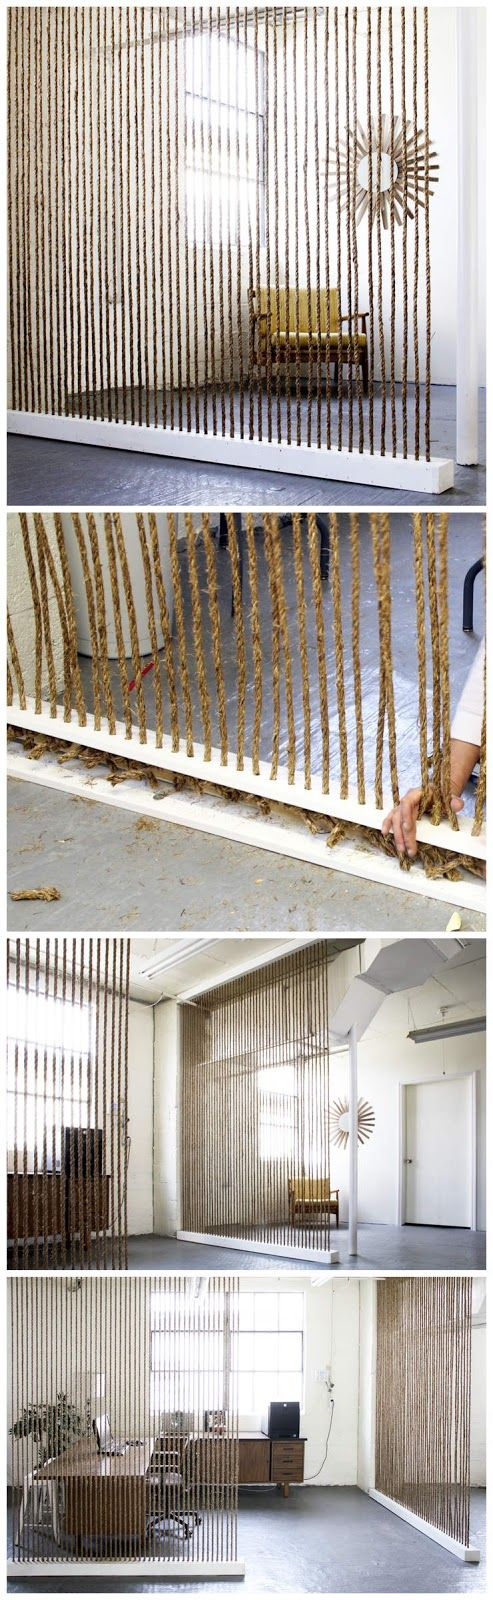 DIY Rope Wall. Awesome idea for an office!